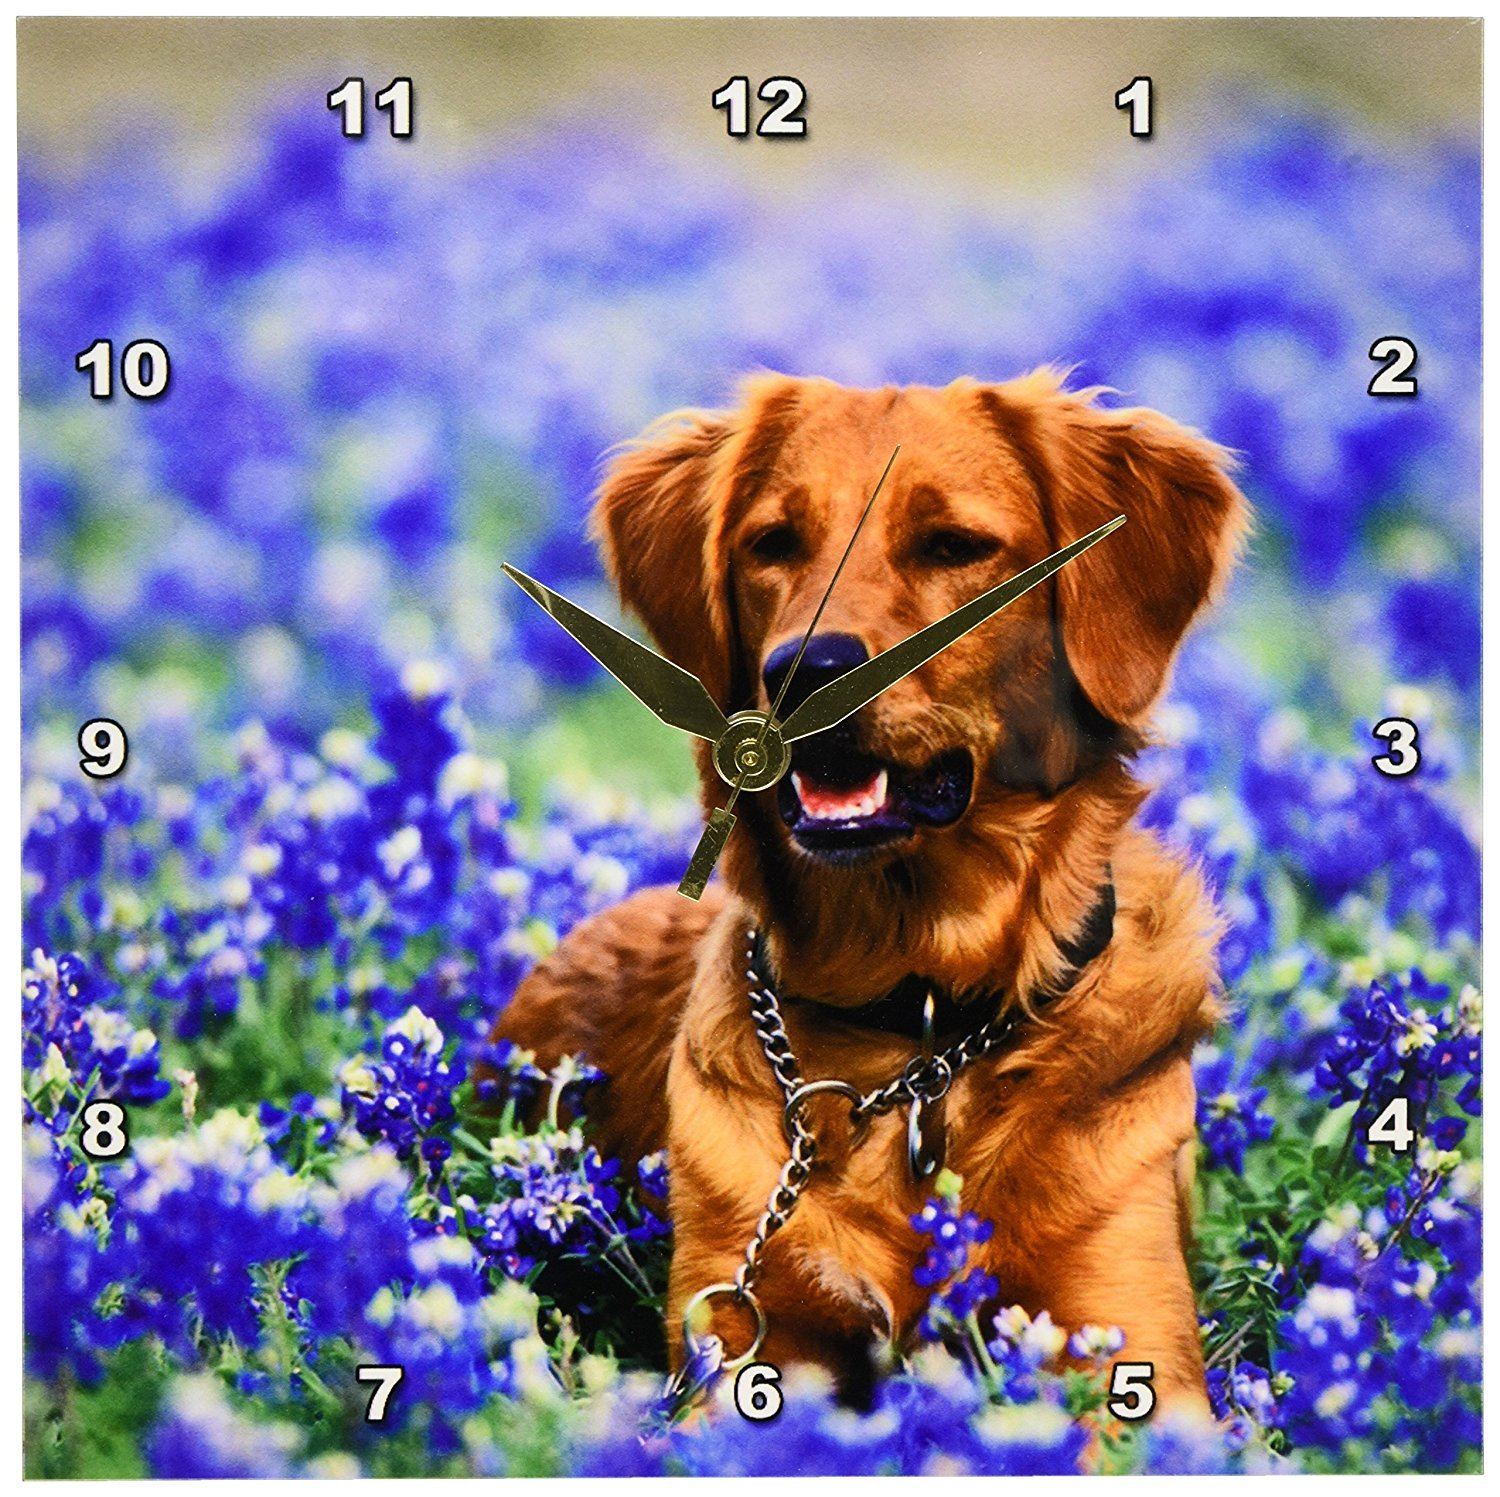 Texas Golden Retriever Dog, Texas Blue Bonnets -Wall Clock, 10 by 10-Inch